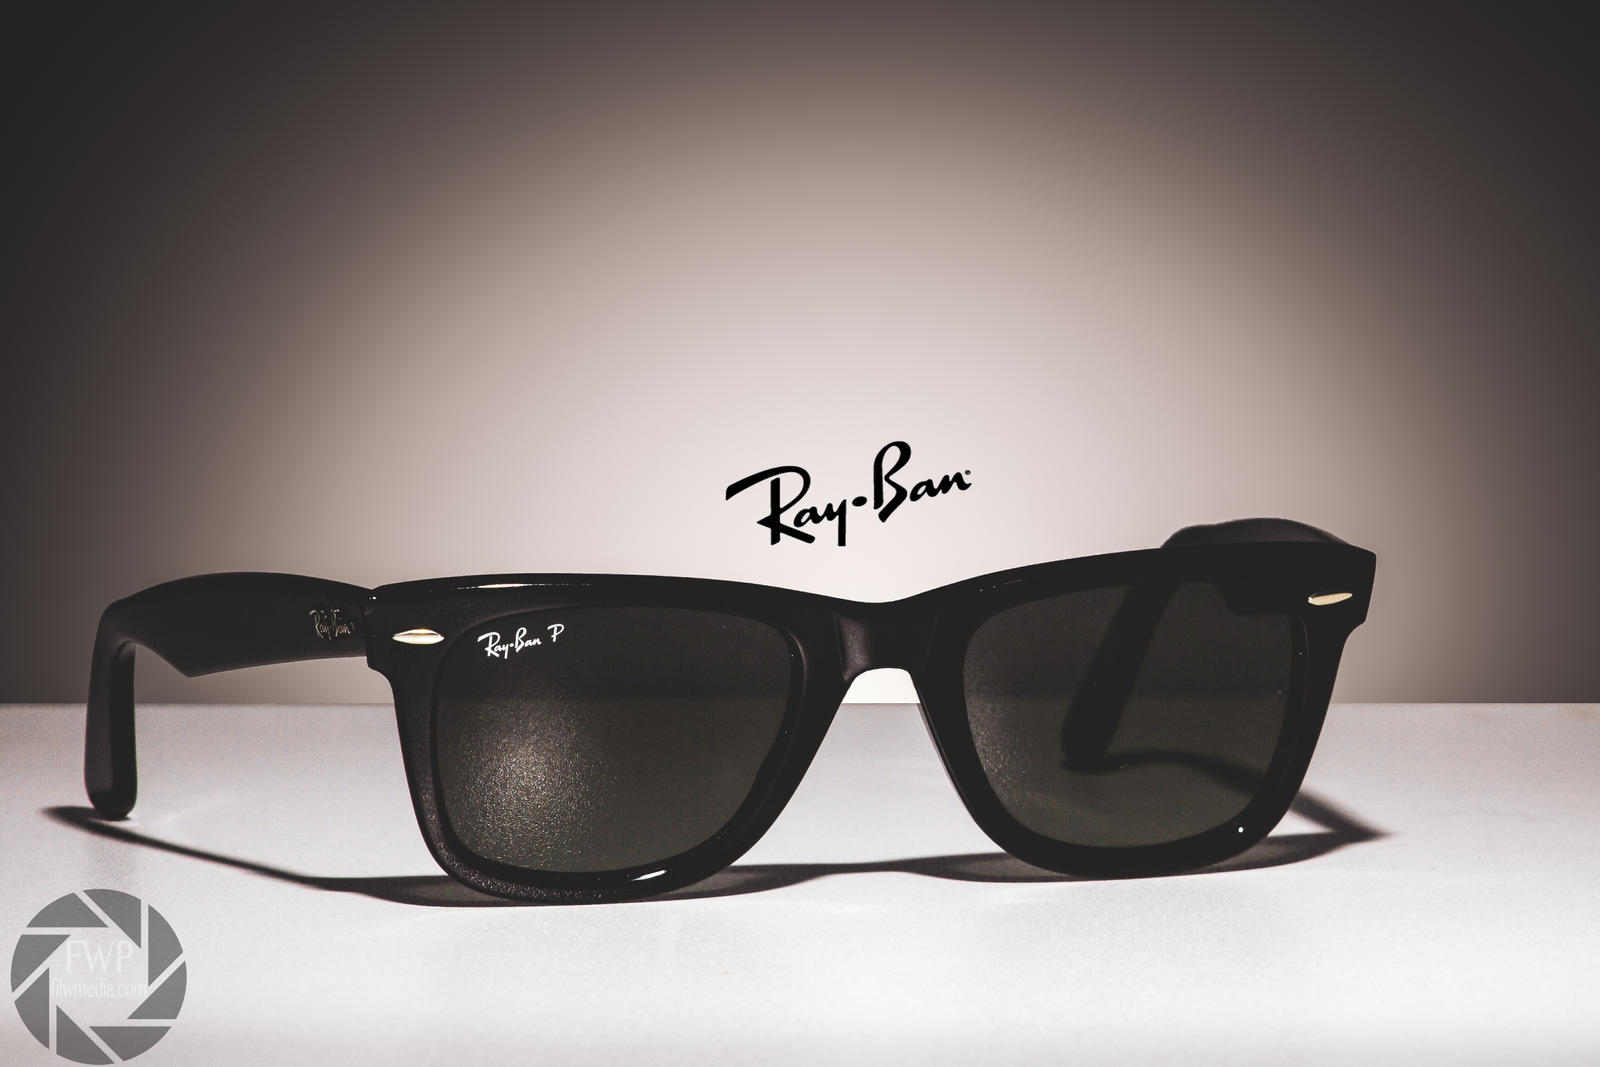 73e0b27326 Ray Ban Products « One More Soul